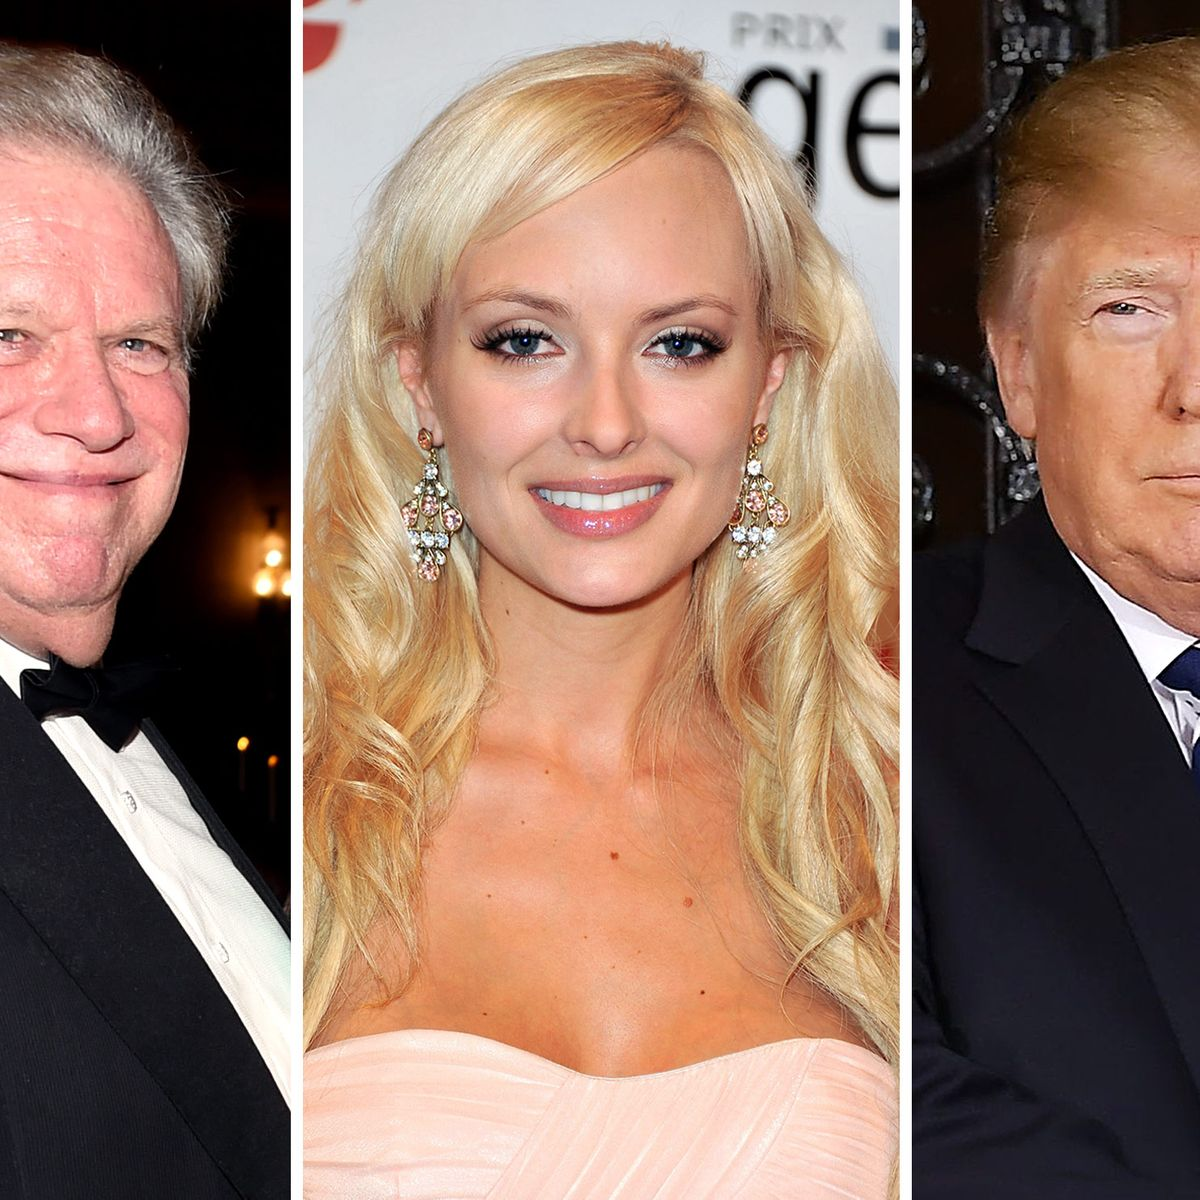 Theory: Playboy Model Had Affair With Trump, Not Broidy